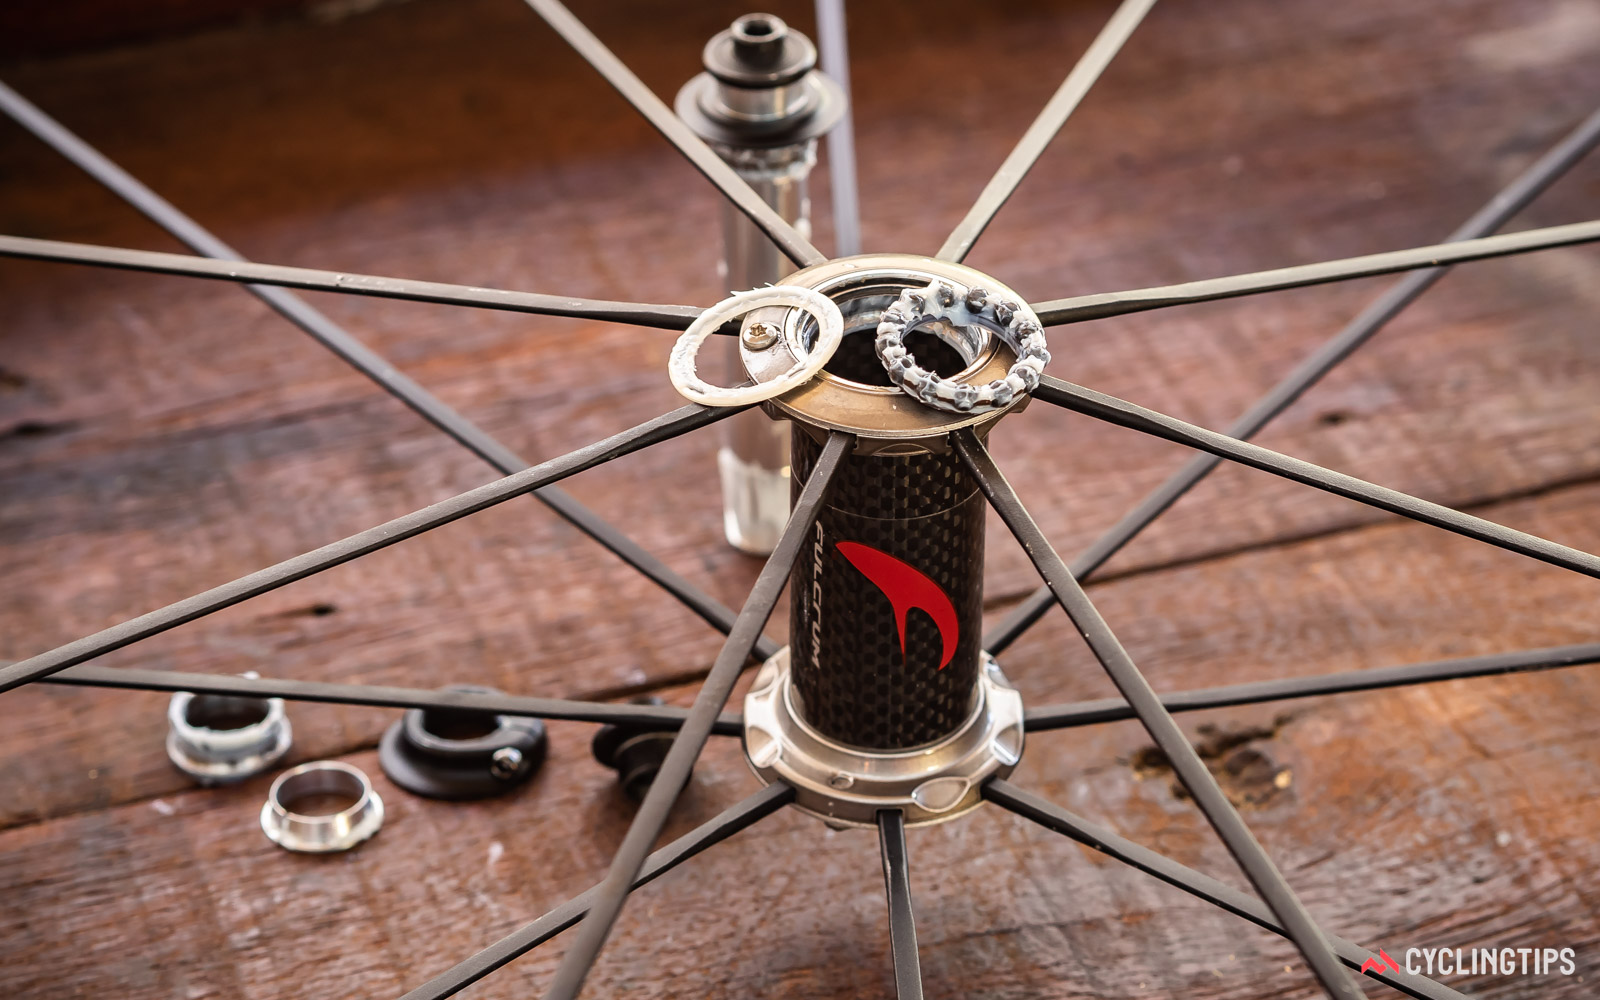 Fulcrum-Racing-Zero-front-hub-assembly